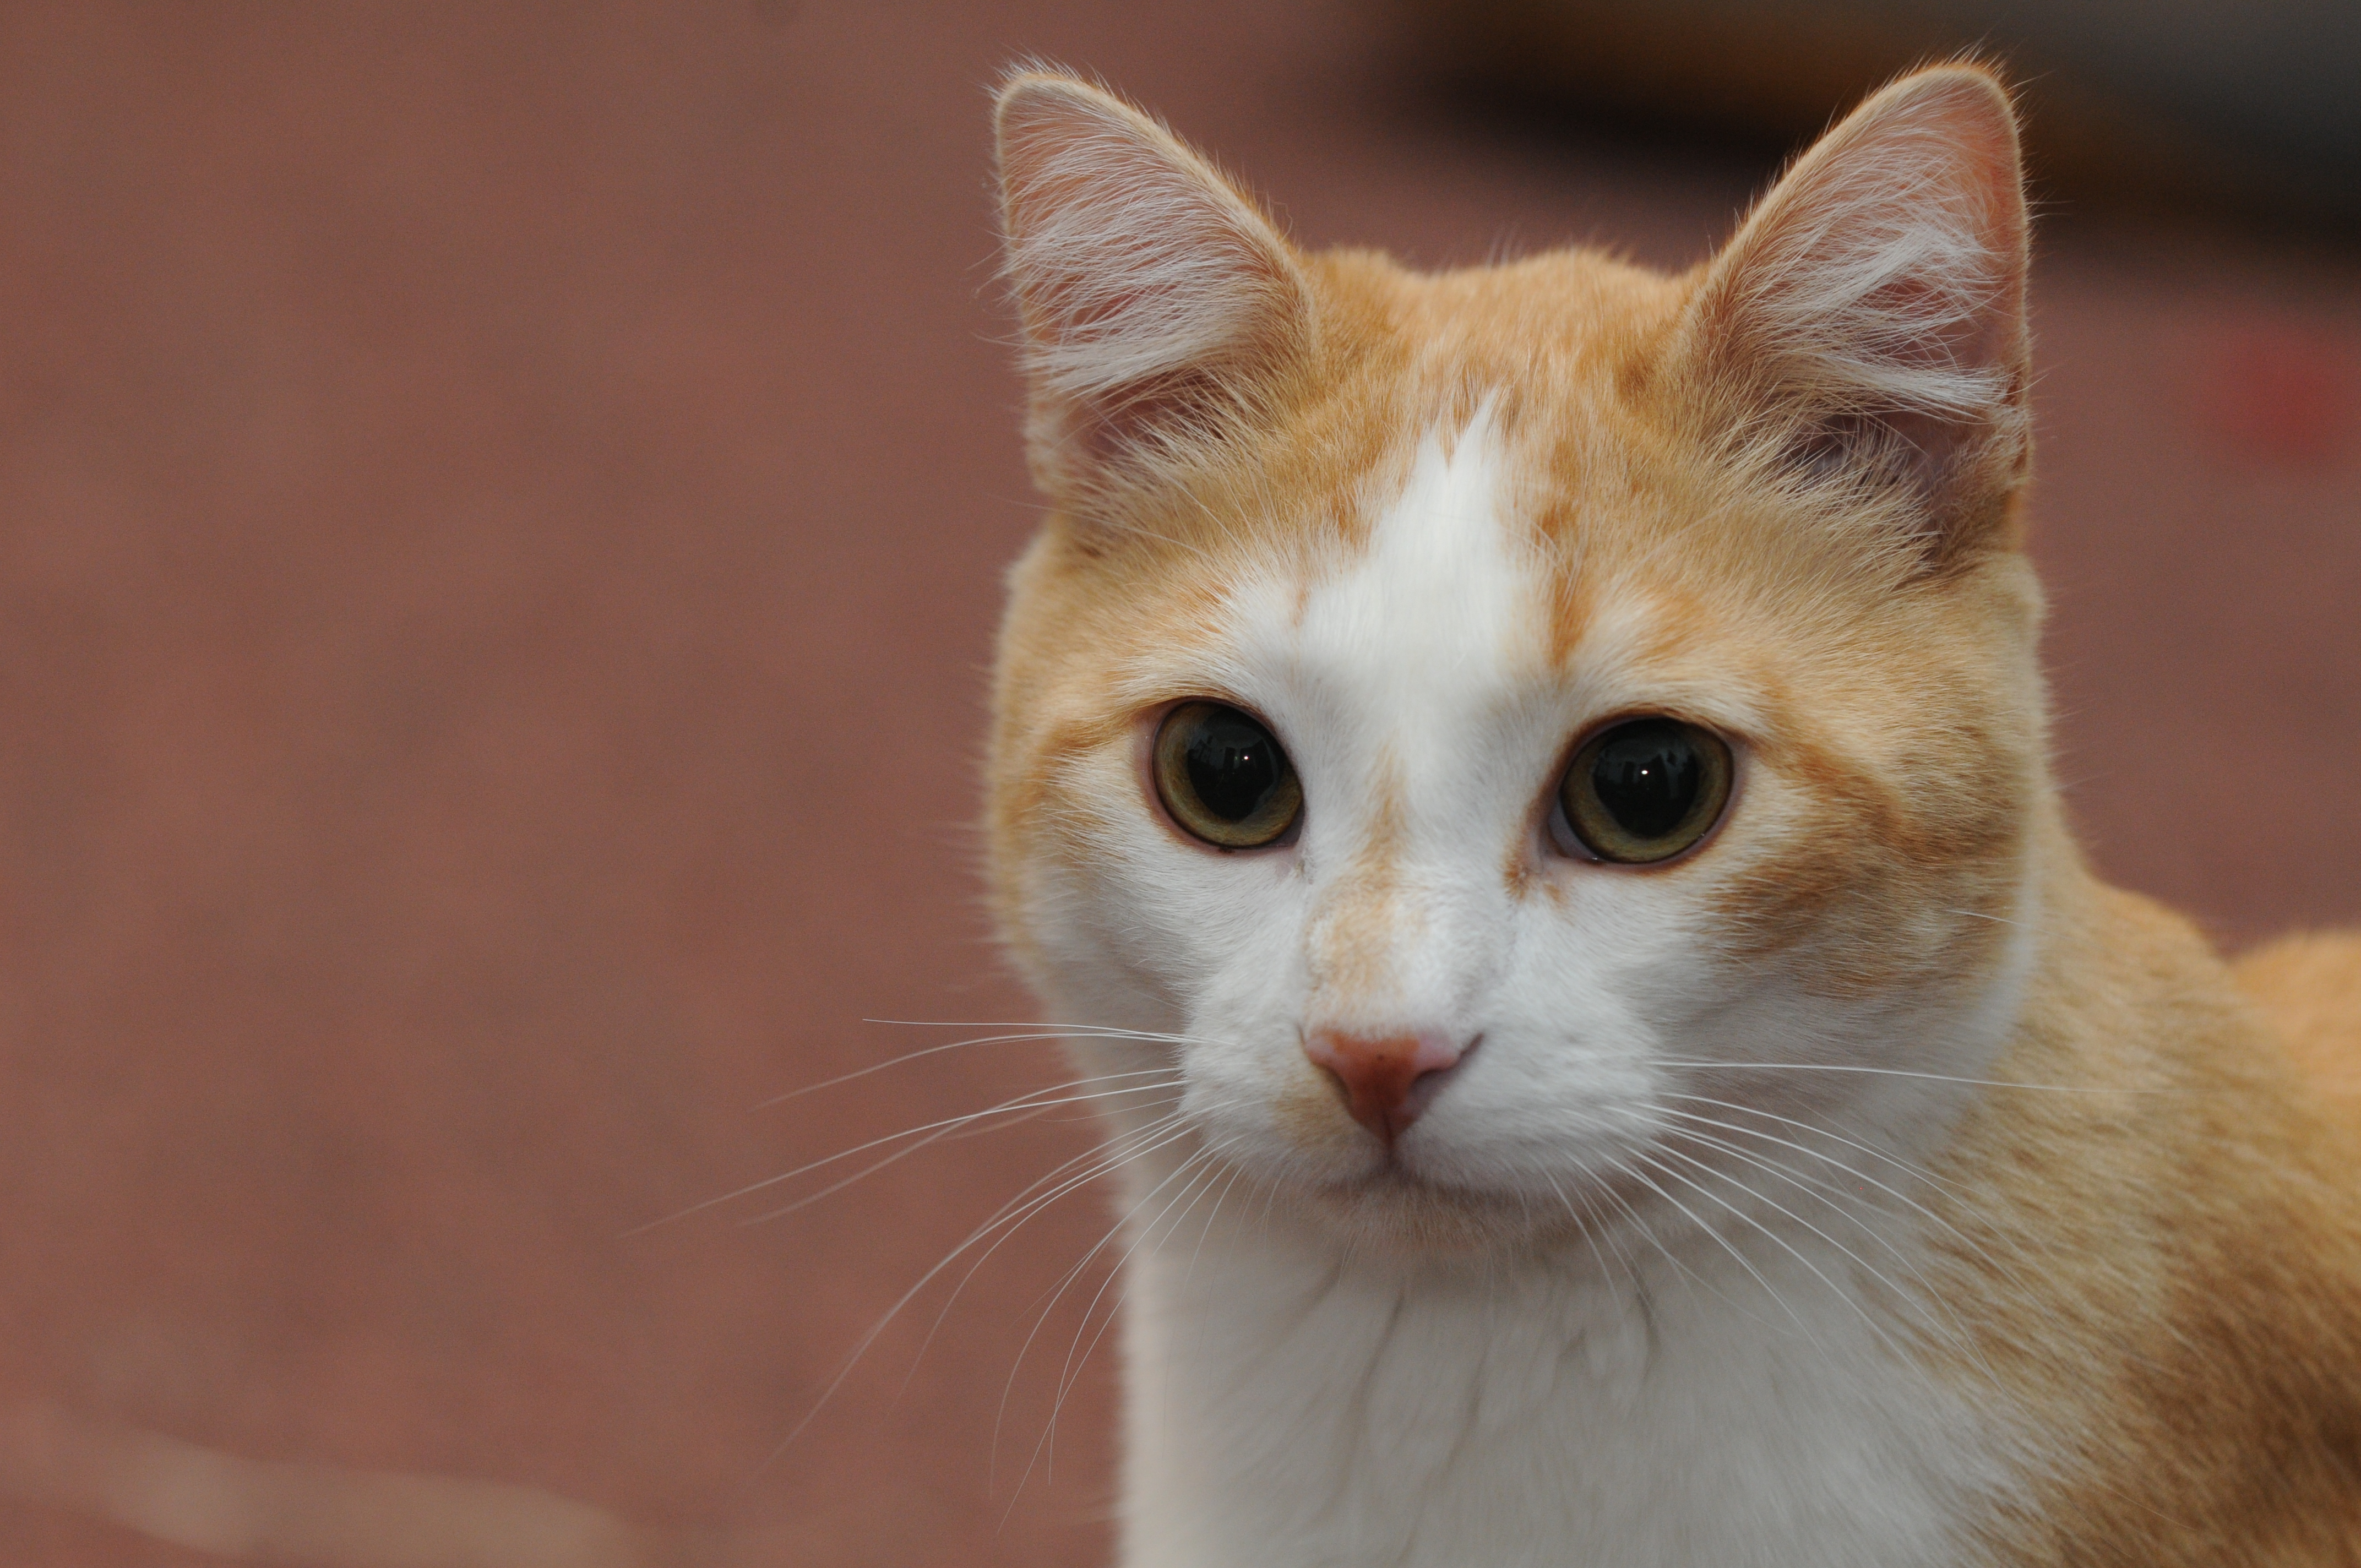 Headshot of orange cat with white face, Animal, Cat, Depth of field, Kitten, HQ Photo